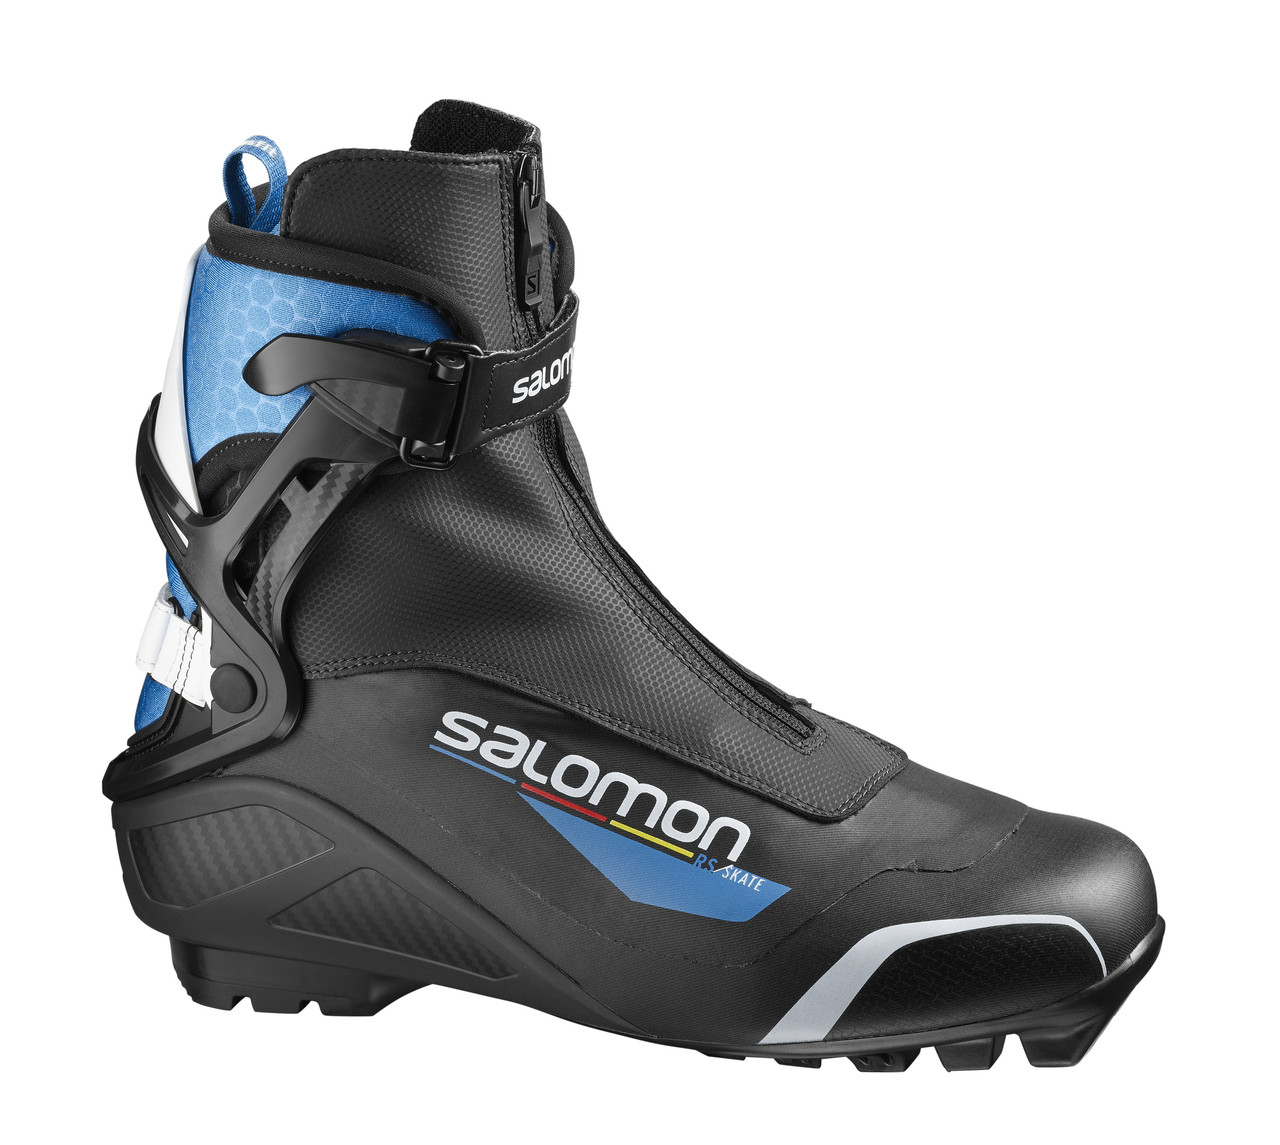 04dabf83d1 Salomon RS Pilot skate Boot 18 19 - Gear West Ski and Run